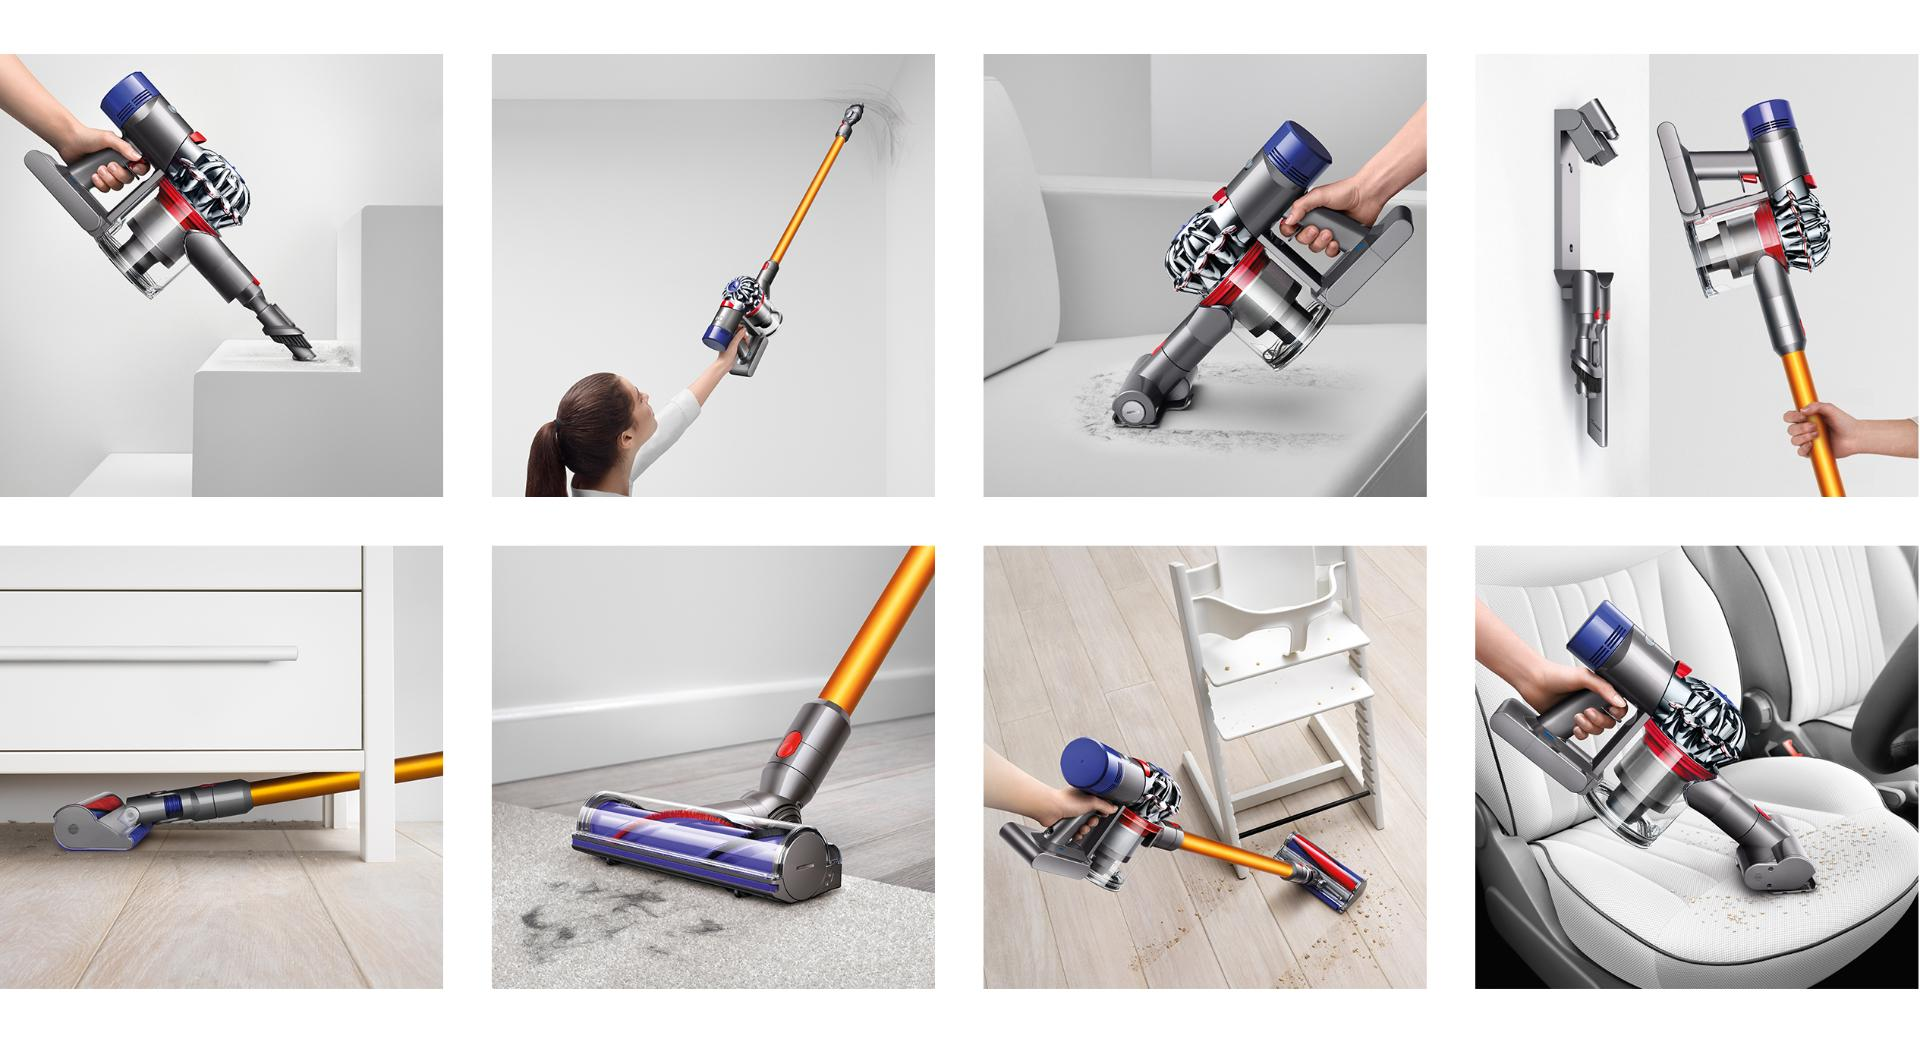 Play the video: See how to clean with the Dyson V8 vacuum cleaner